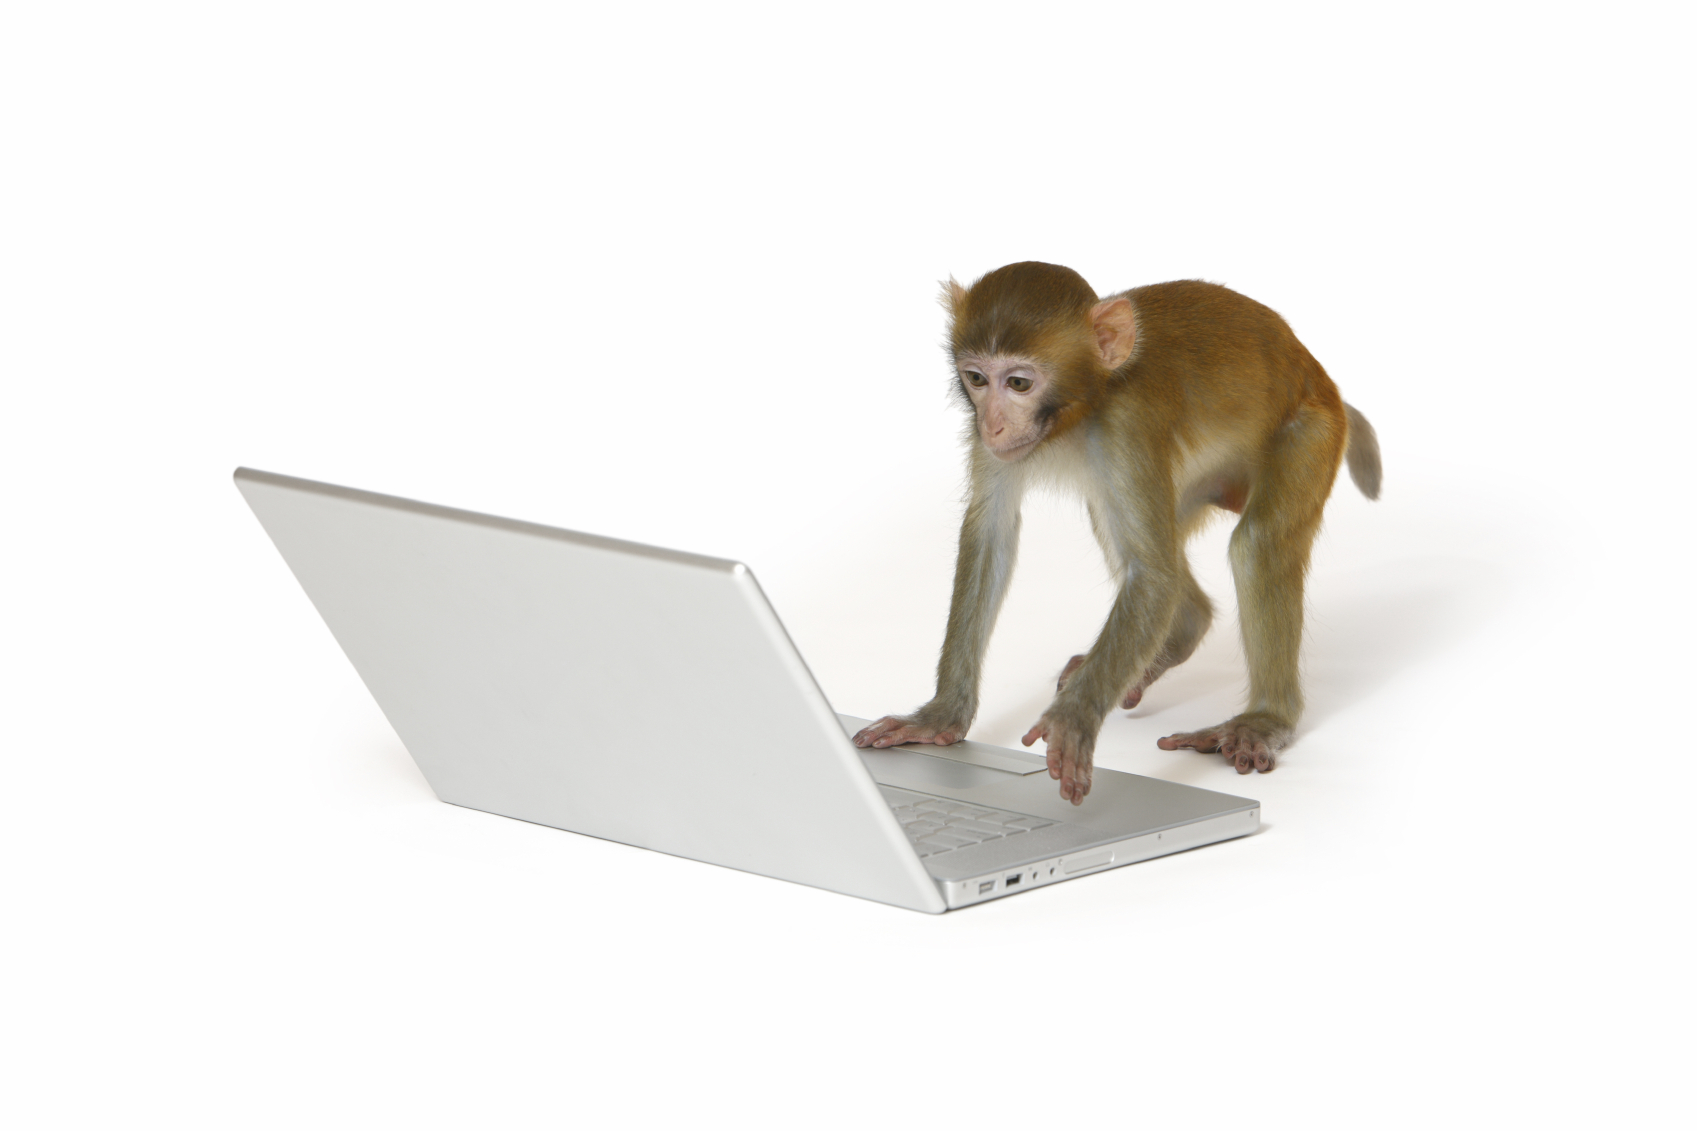 infinite-monkey-theorem.jpg